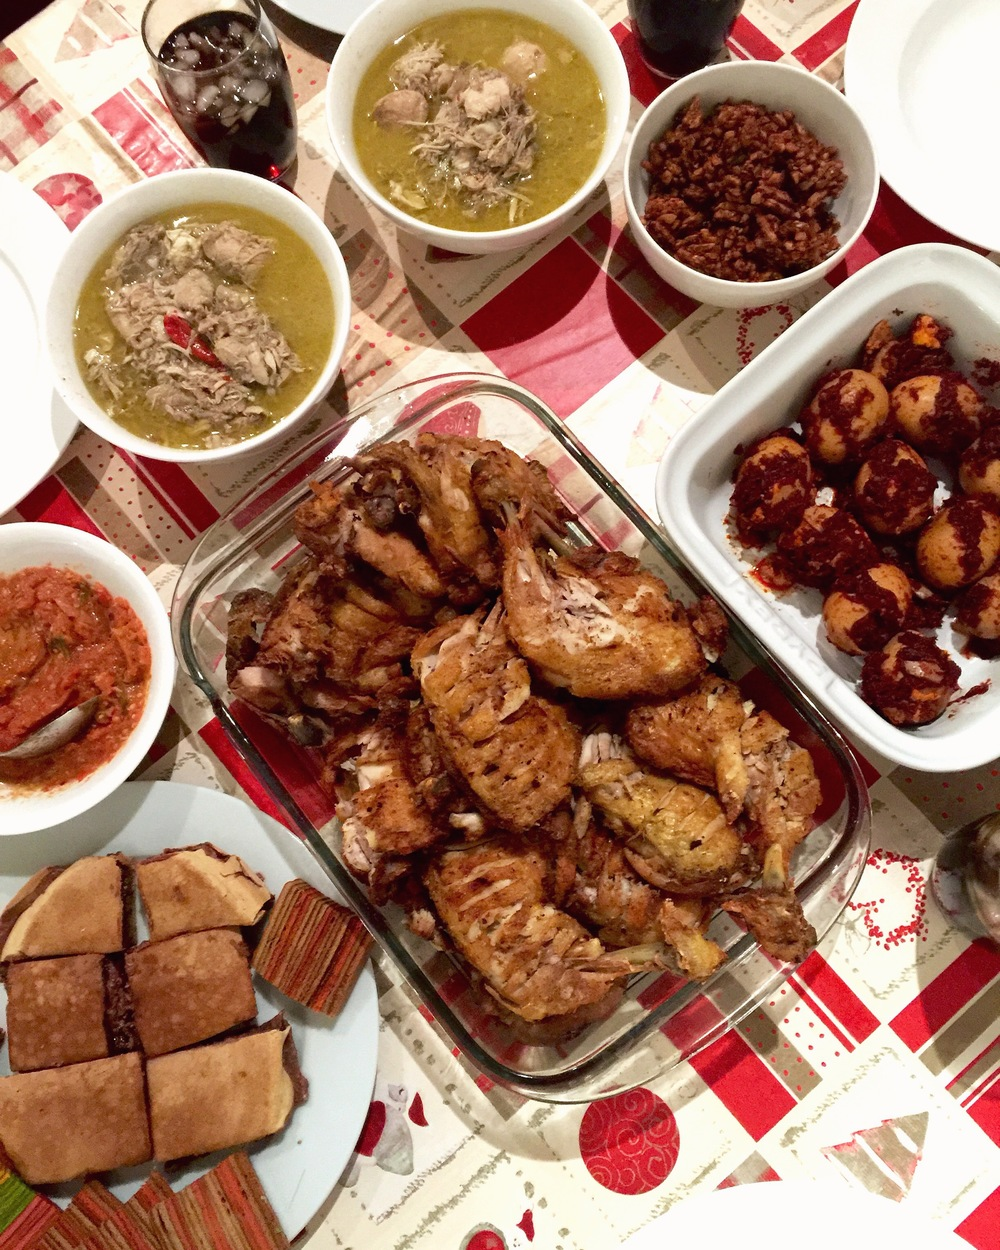 Opor Ayam, Ayam Penyet with Sambal, Martabak Manis all prepared by Axel, and Sambal Tumis Telur by Tengku (Not in picture: mashed potatoes with gravy that looked like bubur kacang by Lili, and salad pasal nak step healthy by Maryam and Firdaus)